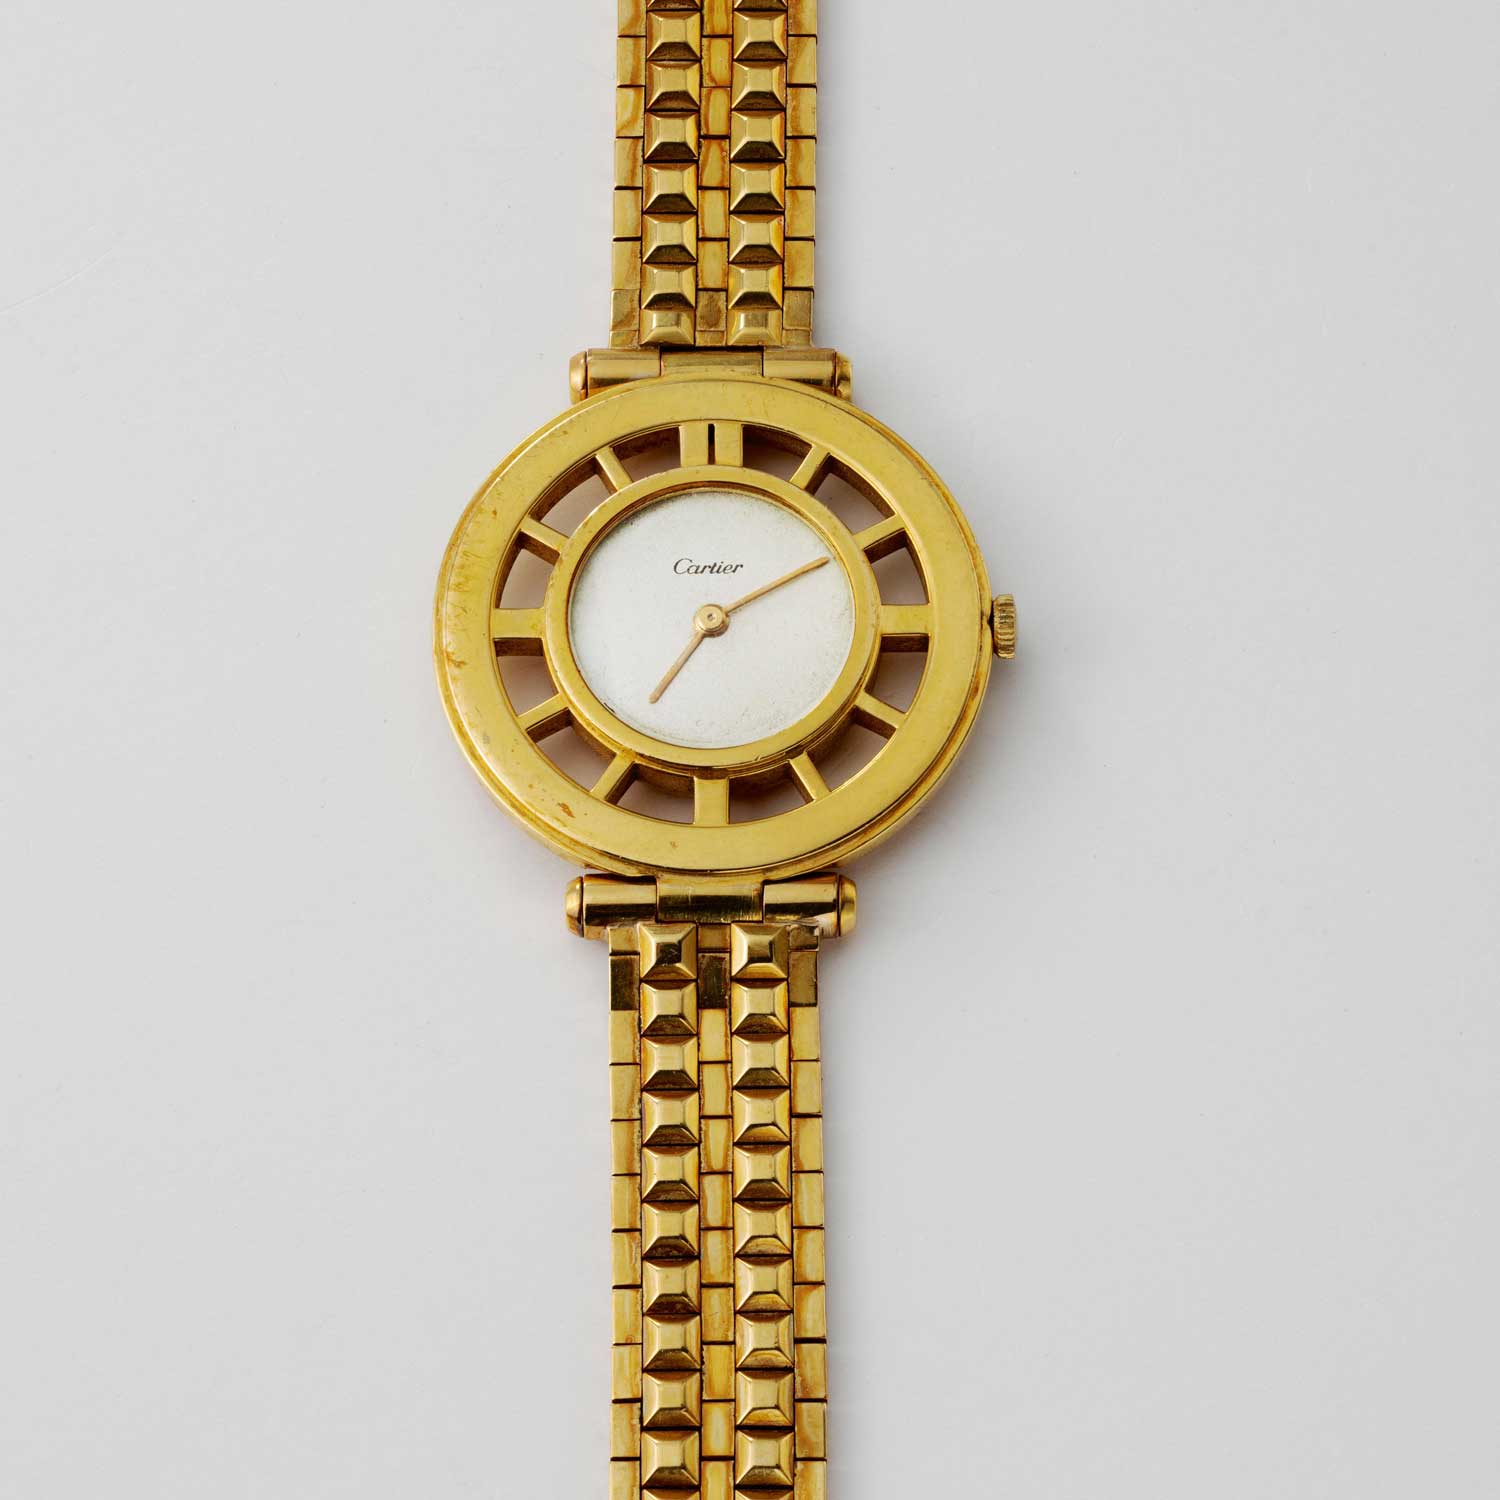 Helm watch in yellow gold, made during the 1940s and 1950s (Image © Revolution)